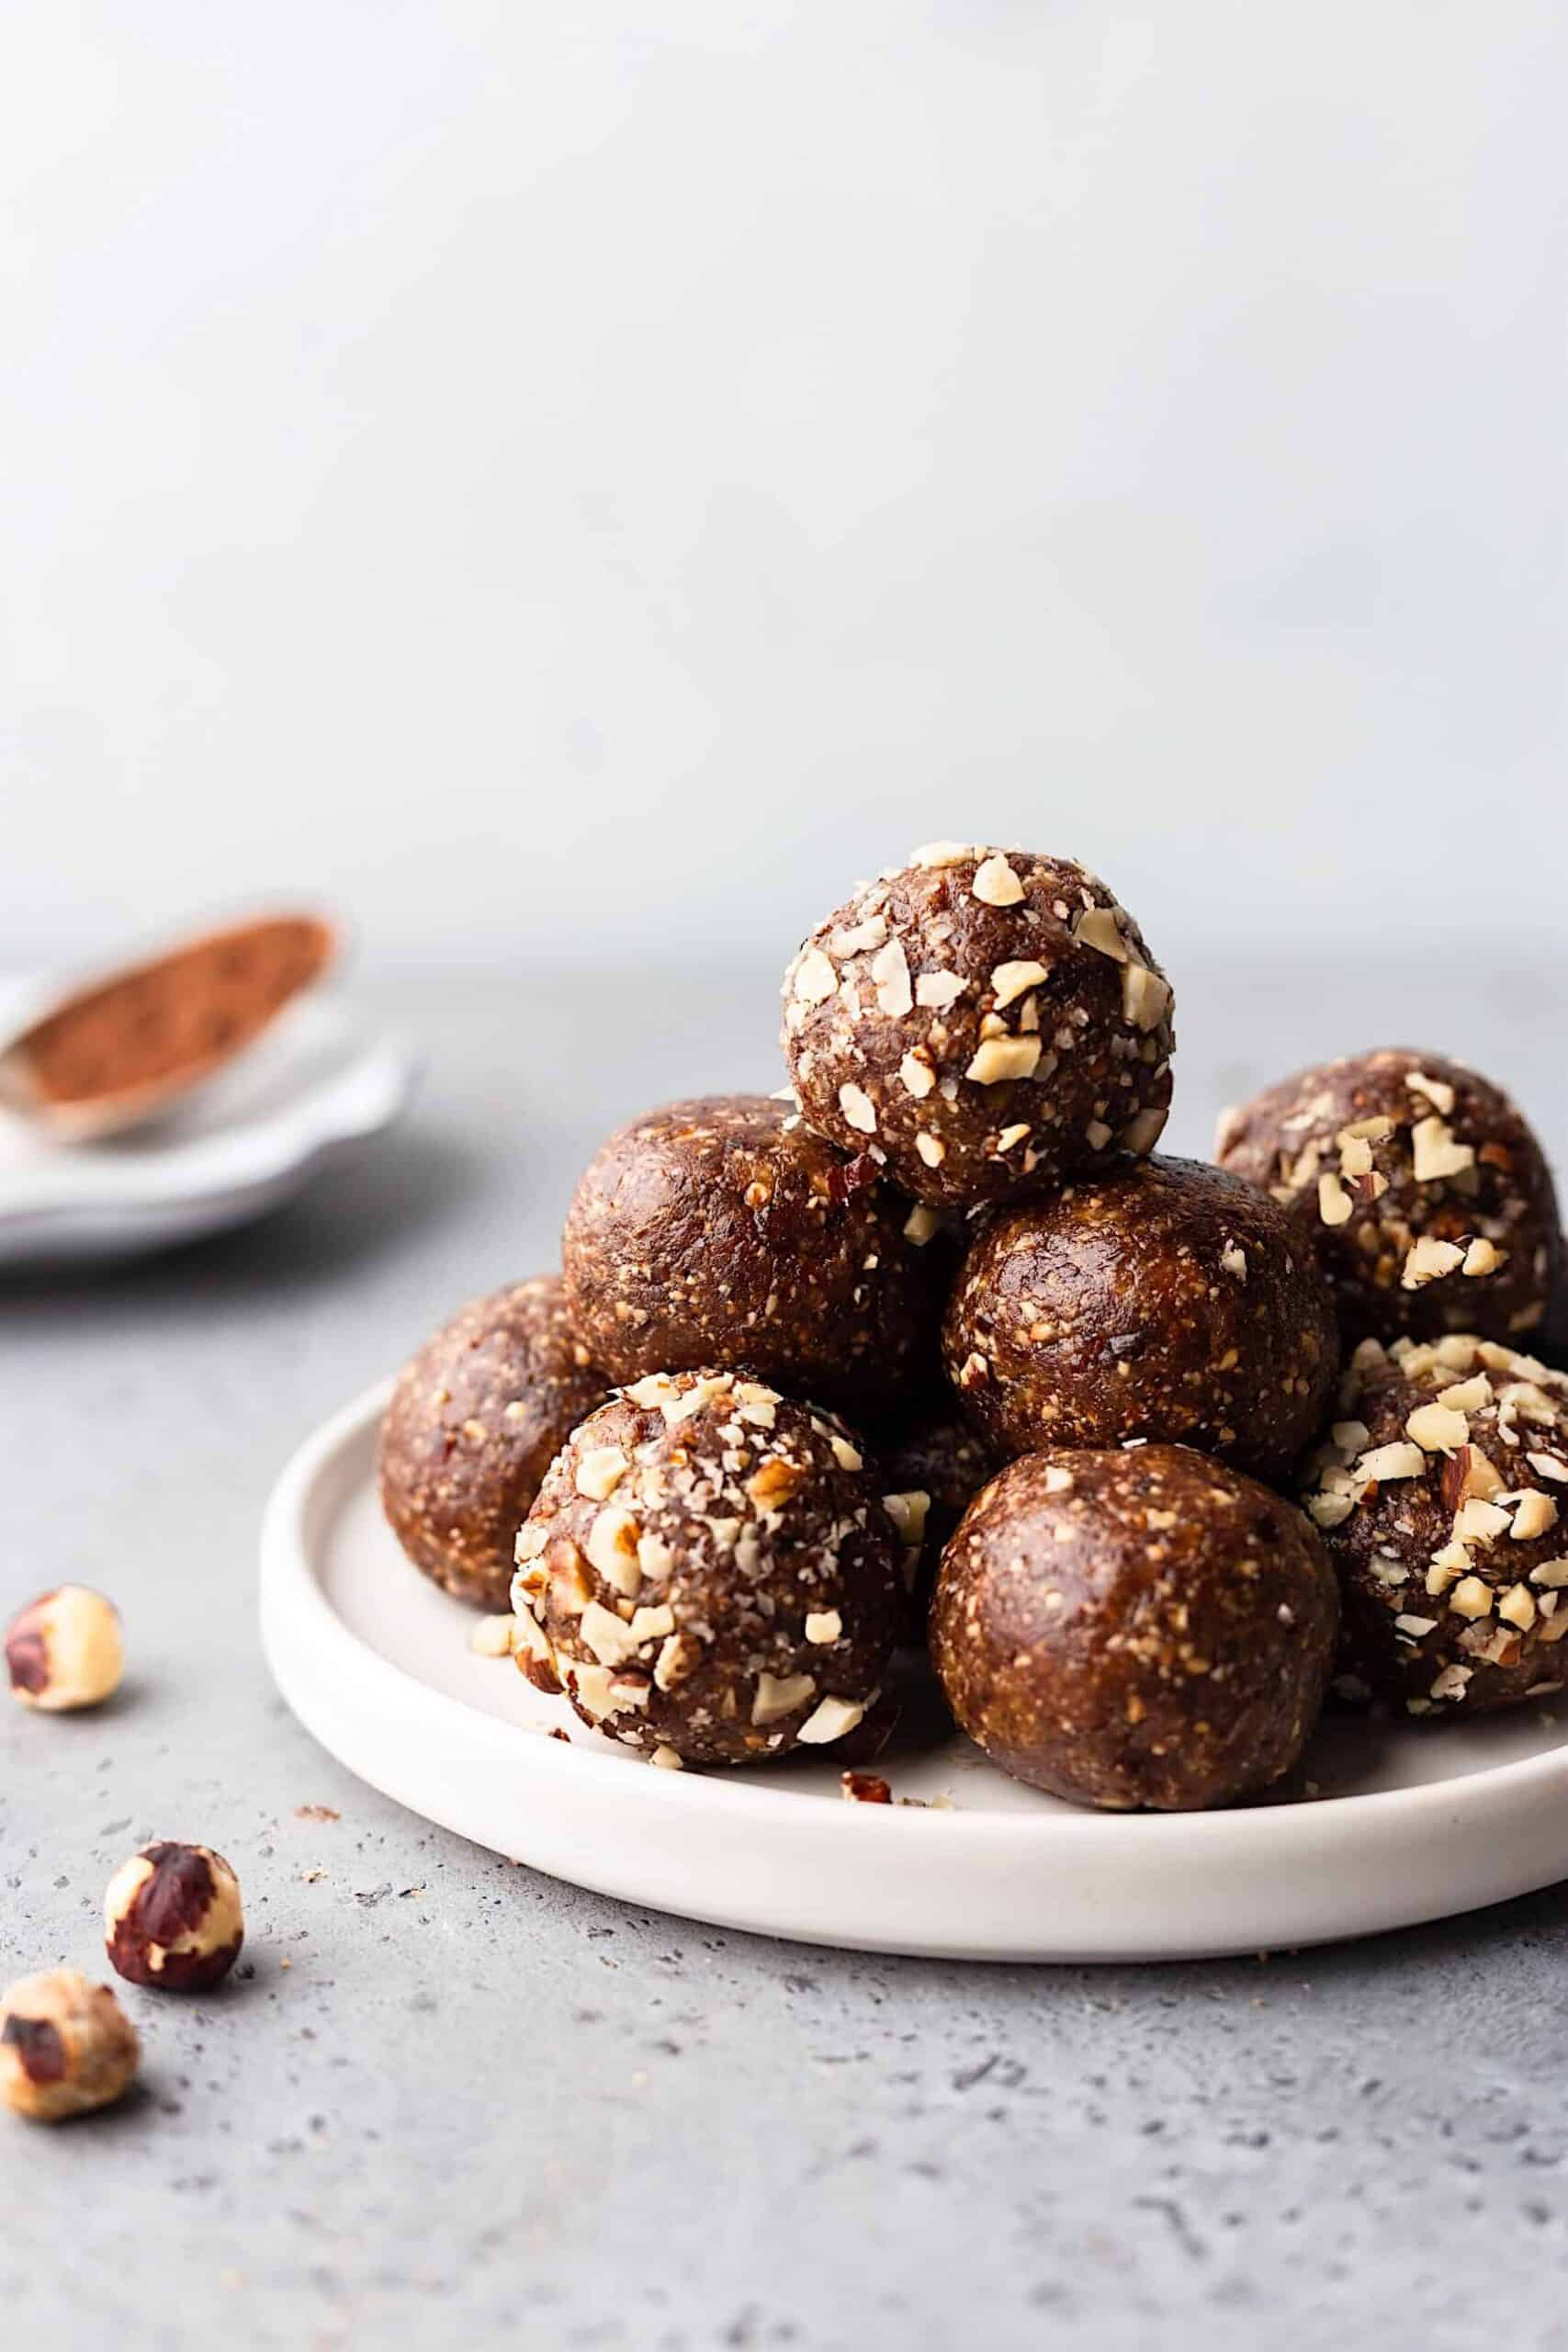 Vegan Chocolate Hazelnut Bliss Balls #vegan #recipe #blissball #energyball #chocolate #hazelnut